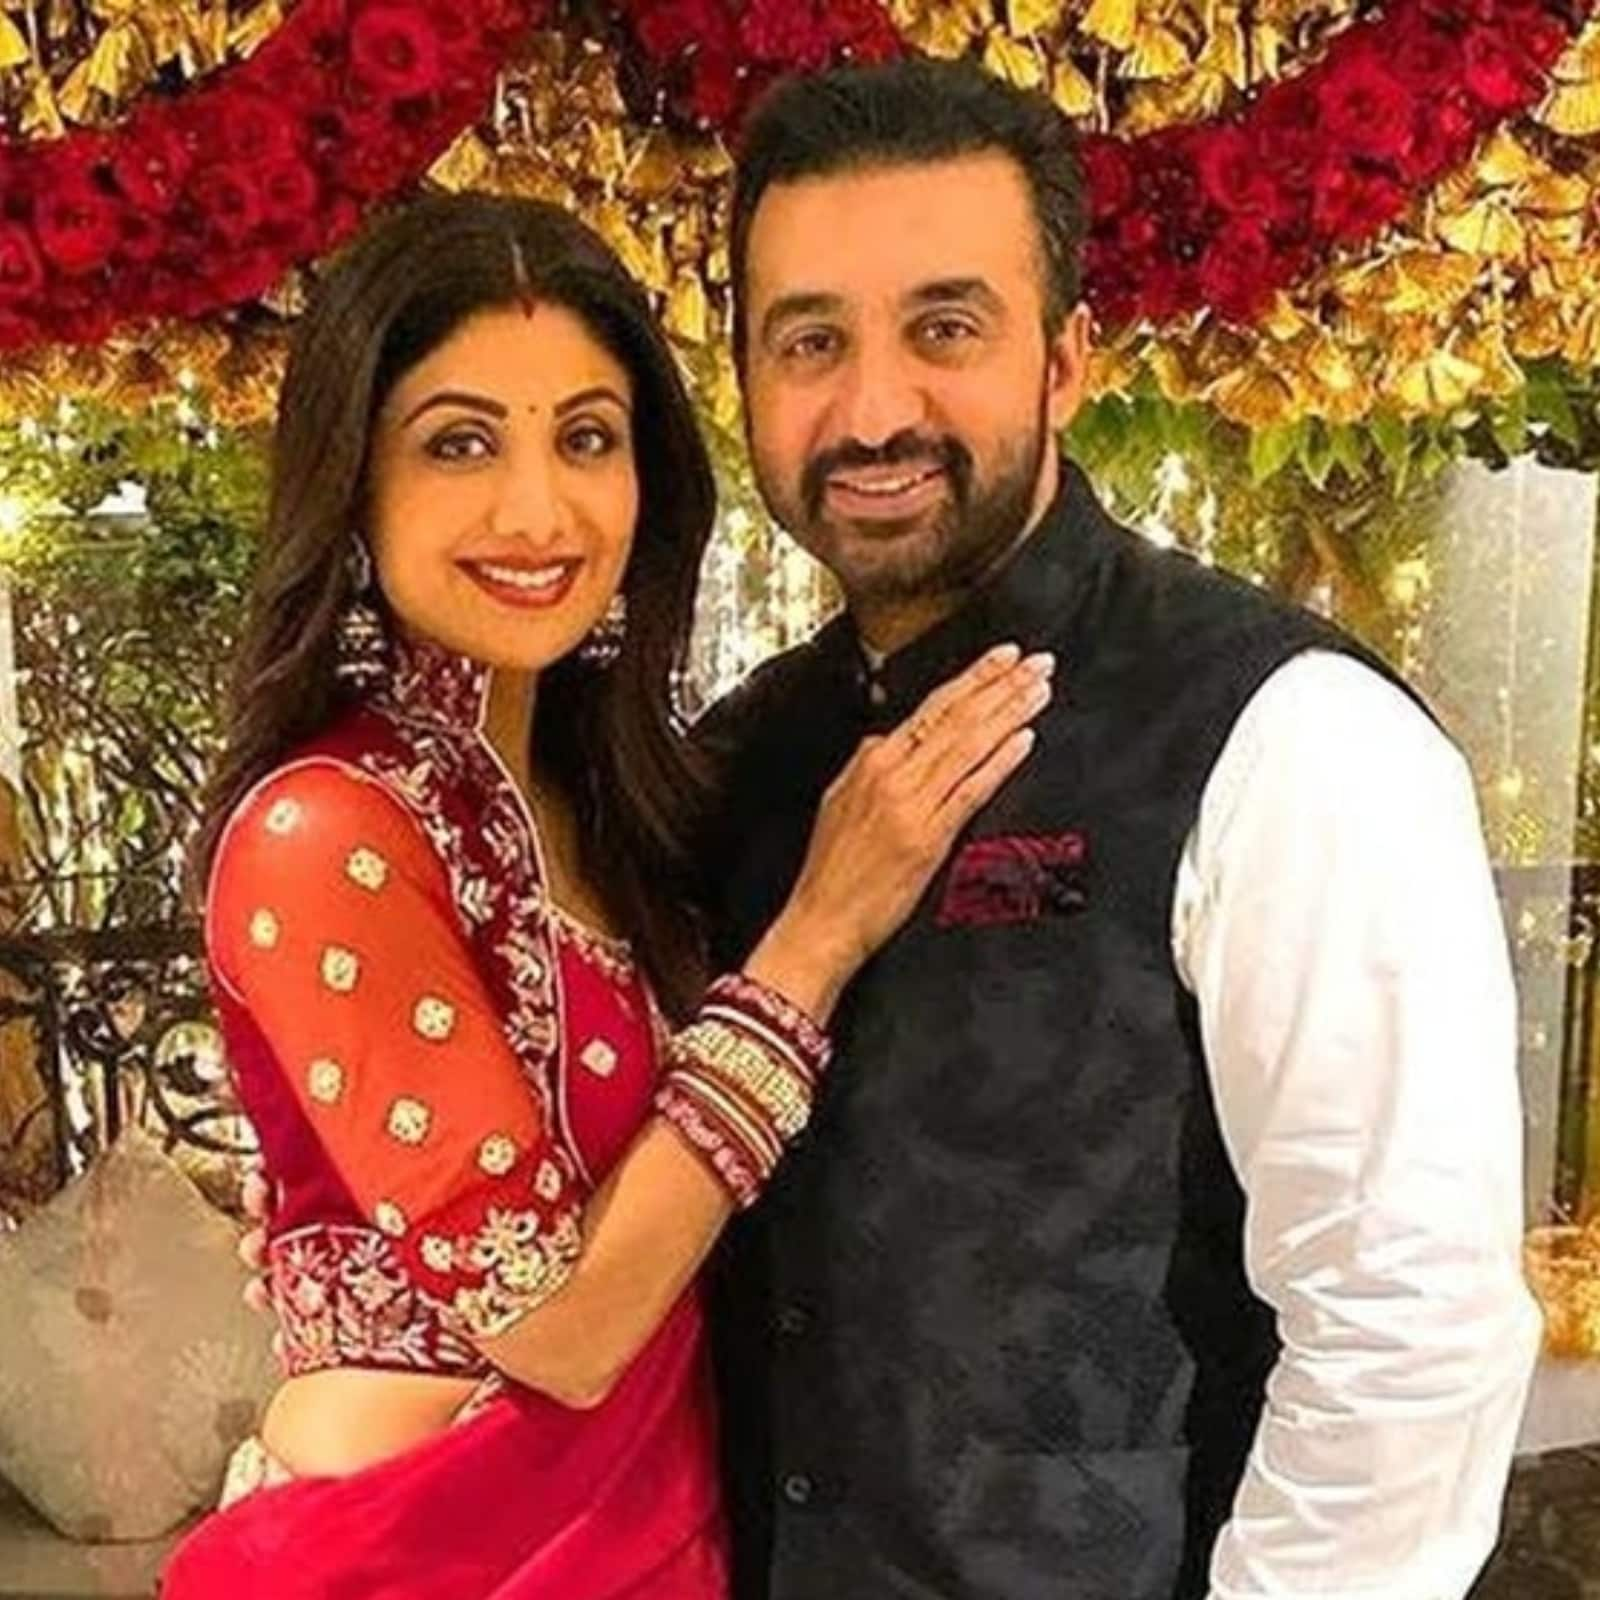 Raj Kundra Case: Shilpa Shetty Being Quizzed by Property Cell on the Porn  Racket